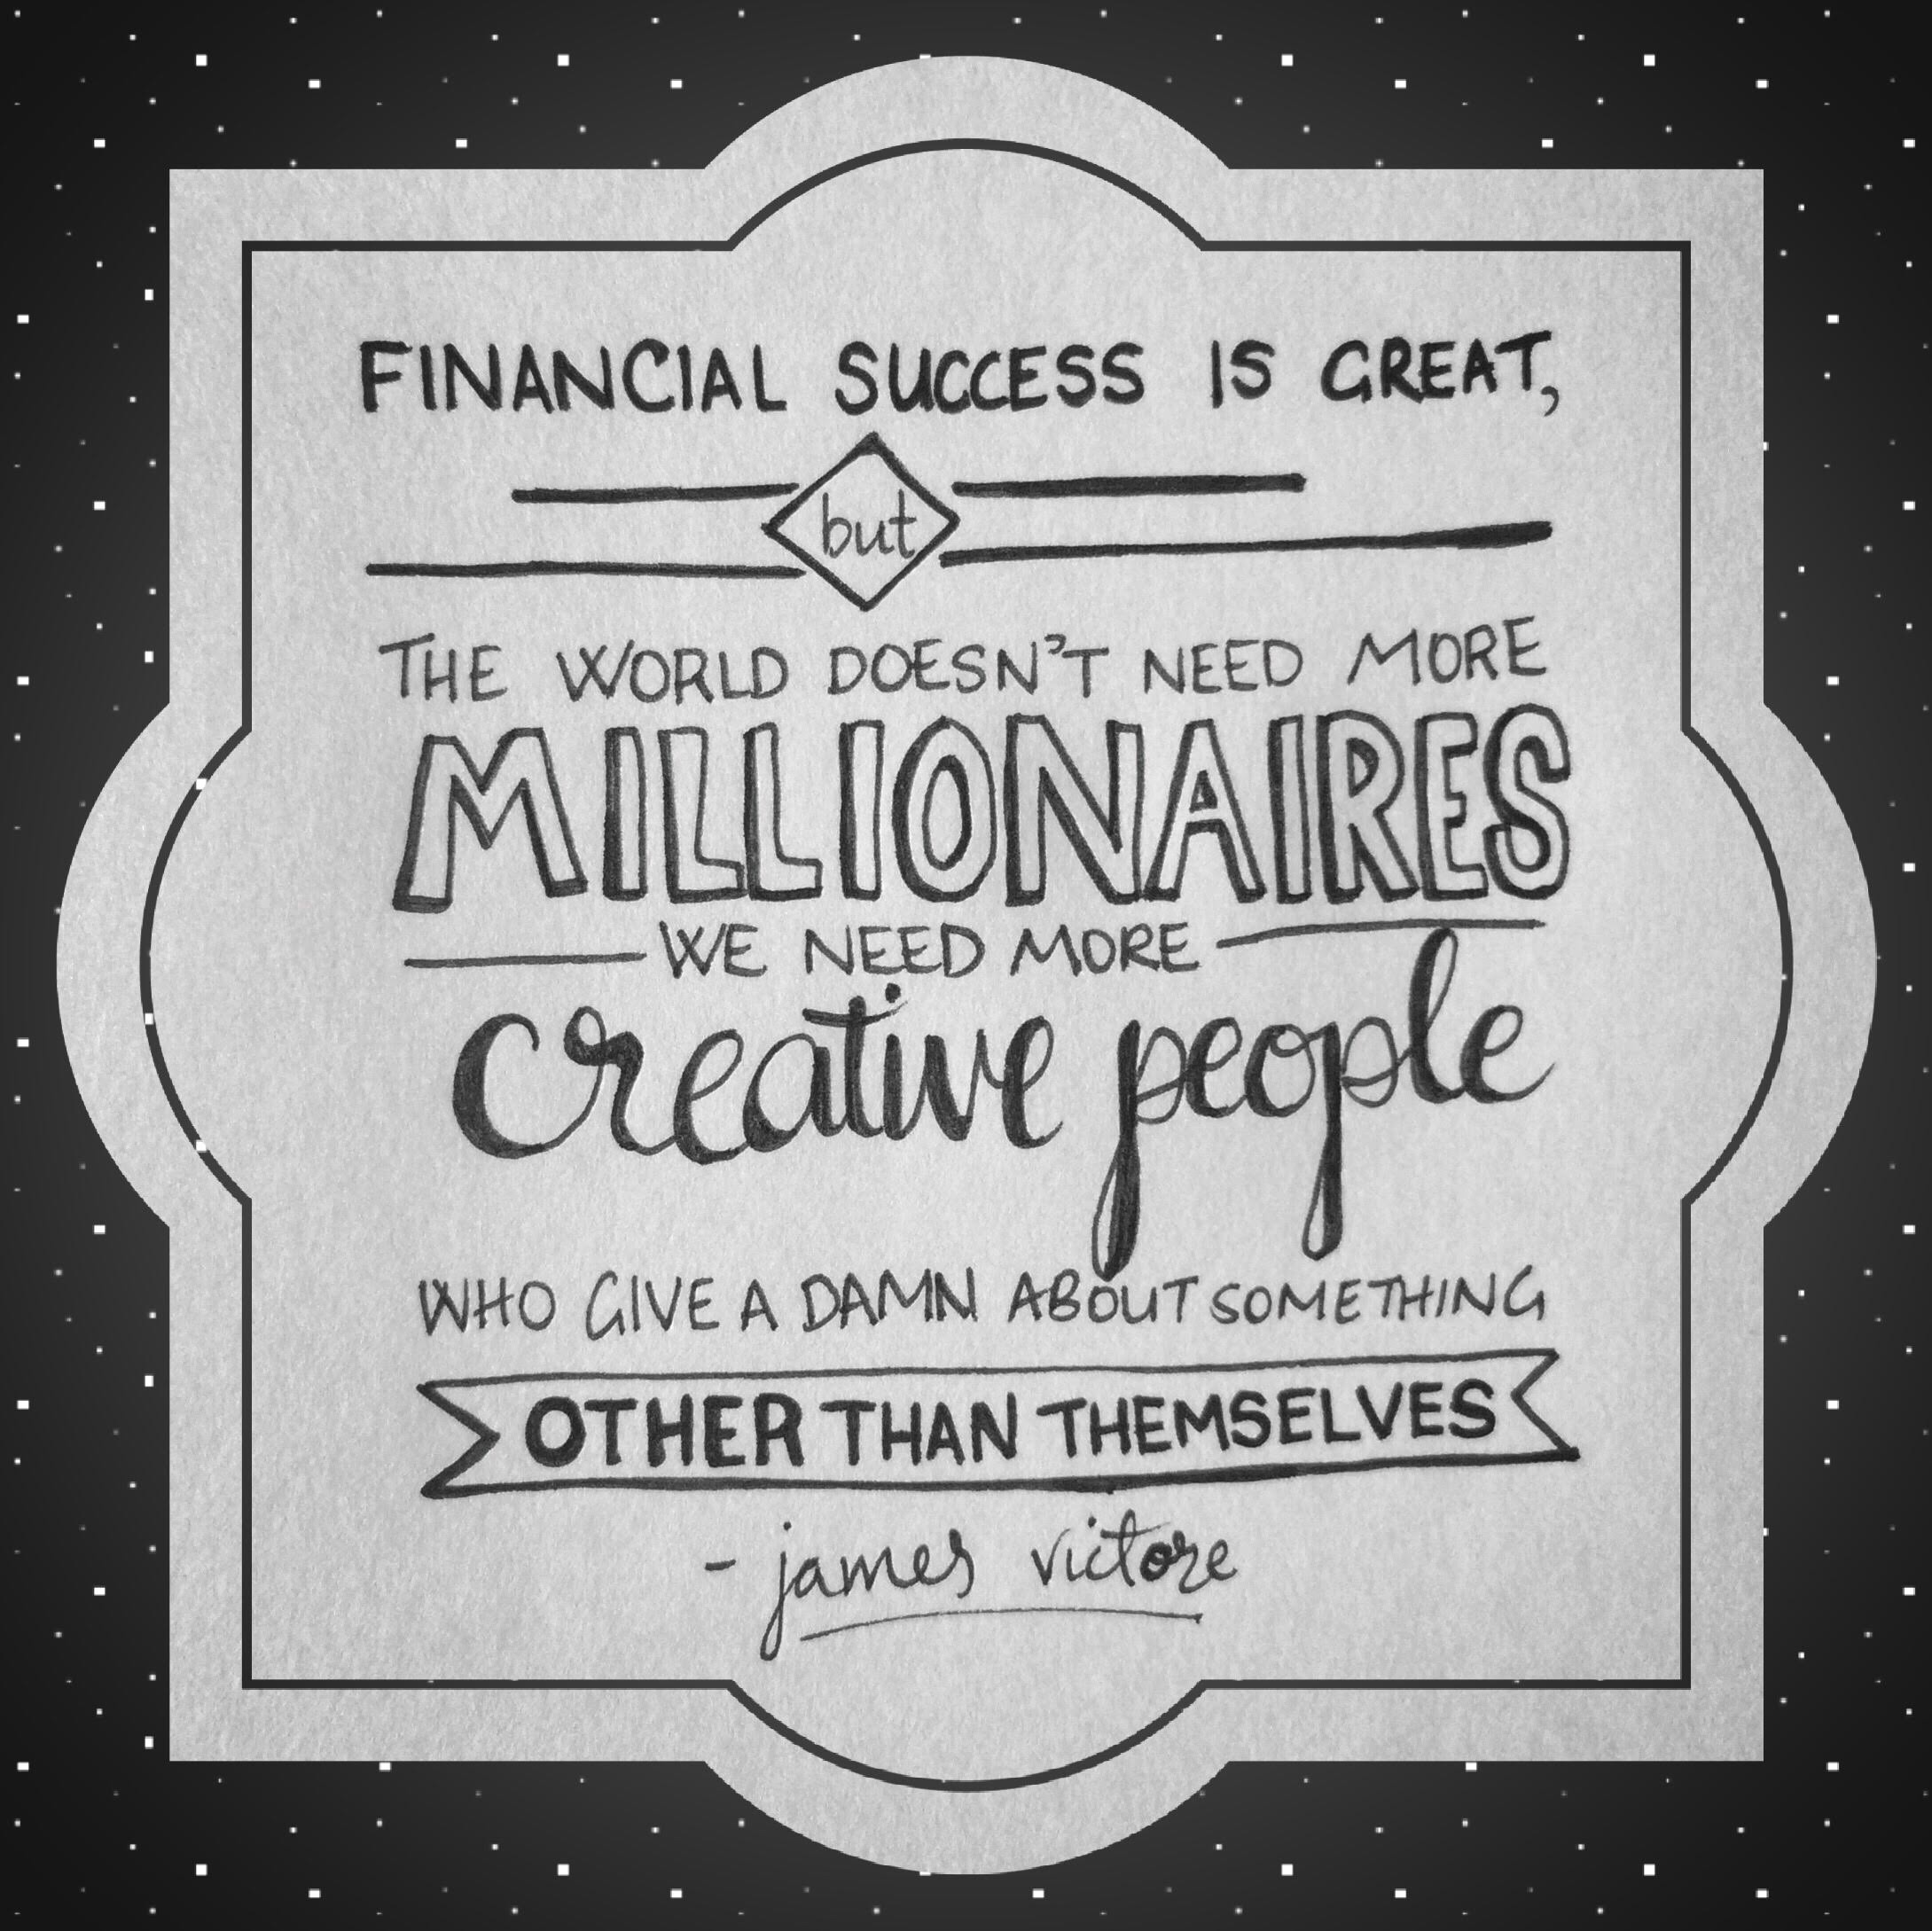 """Financial success is great, but the world doesn't need more millionaires. We need more creative people who give a damn about something other than themselves."" - James Victore"